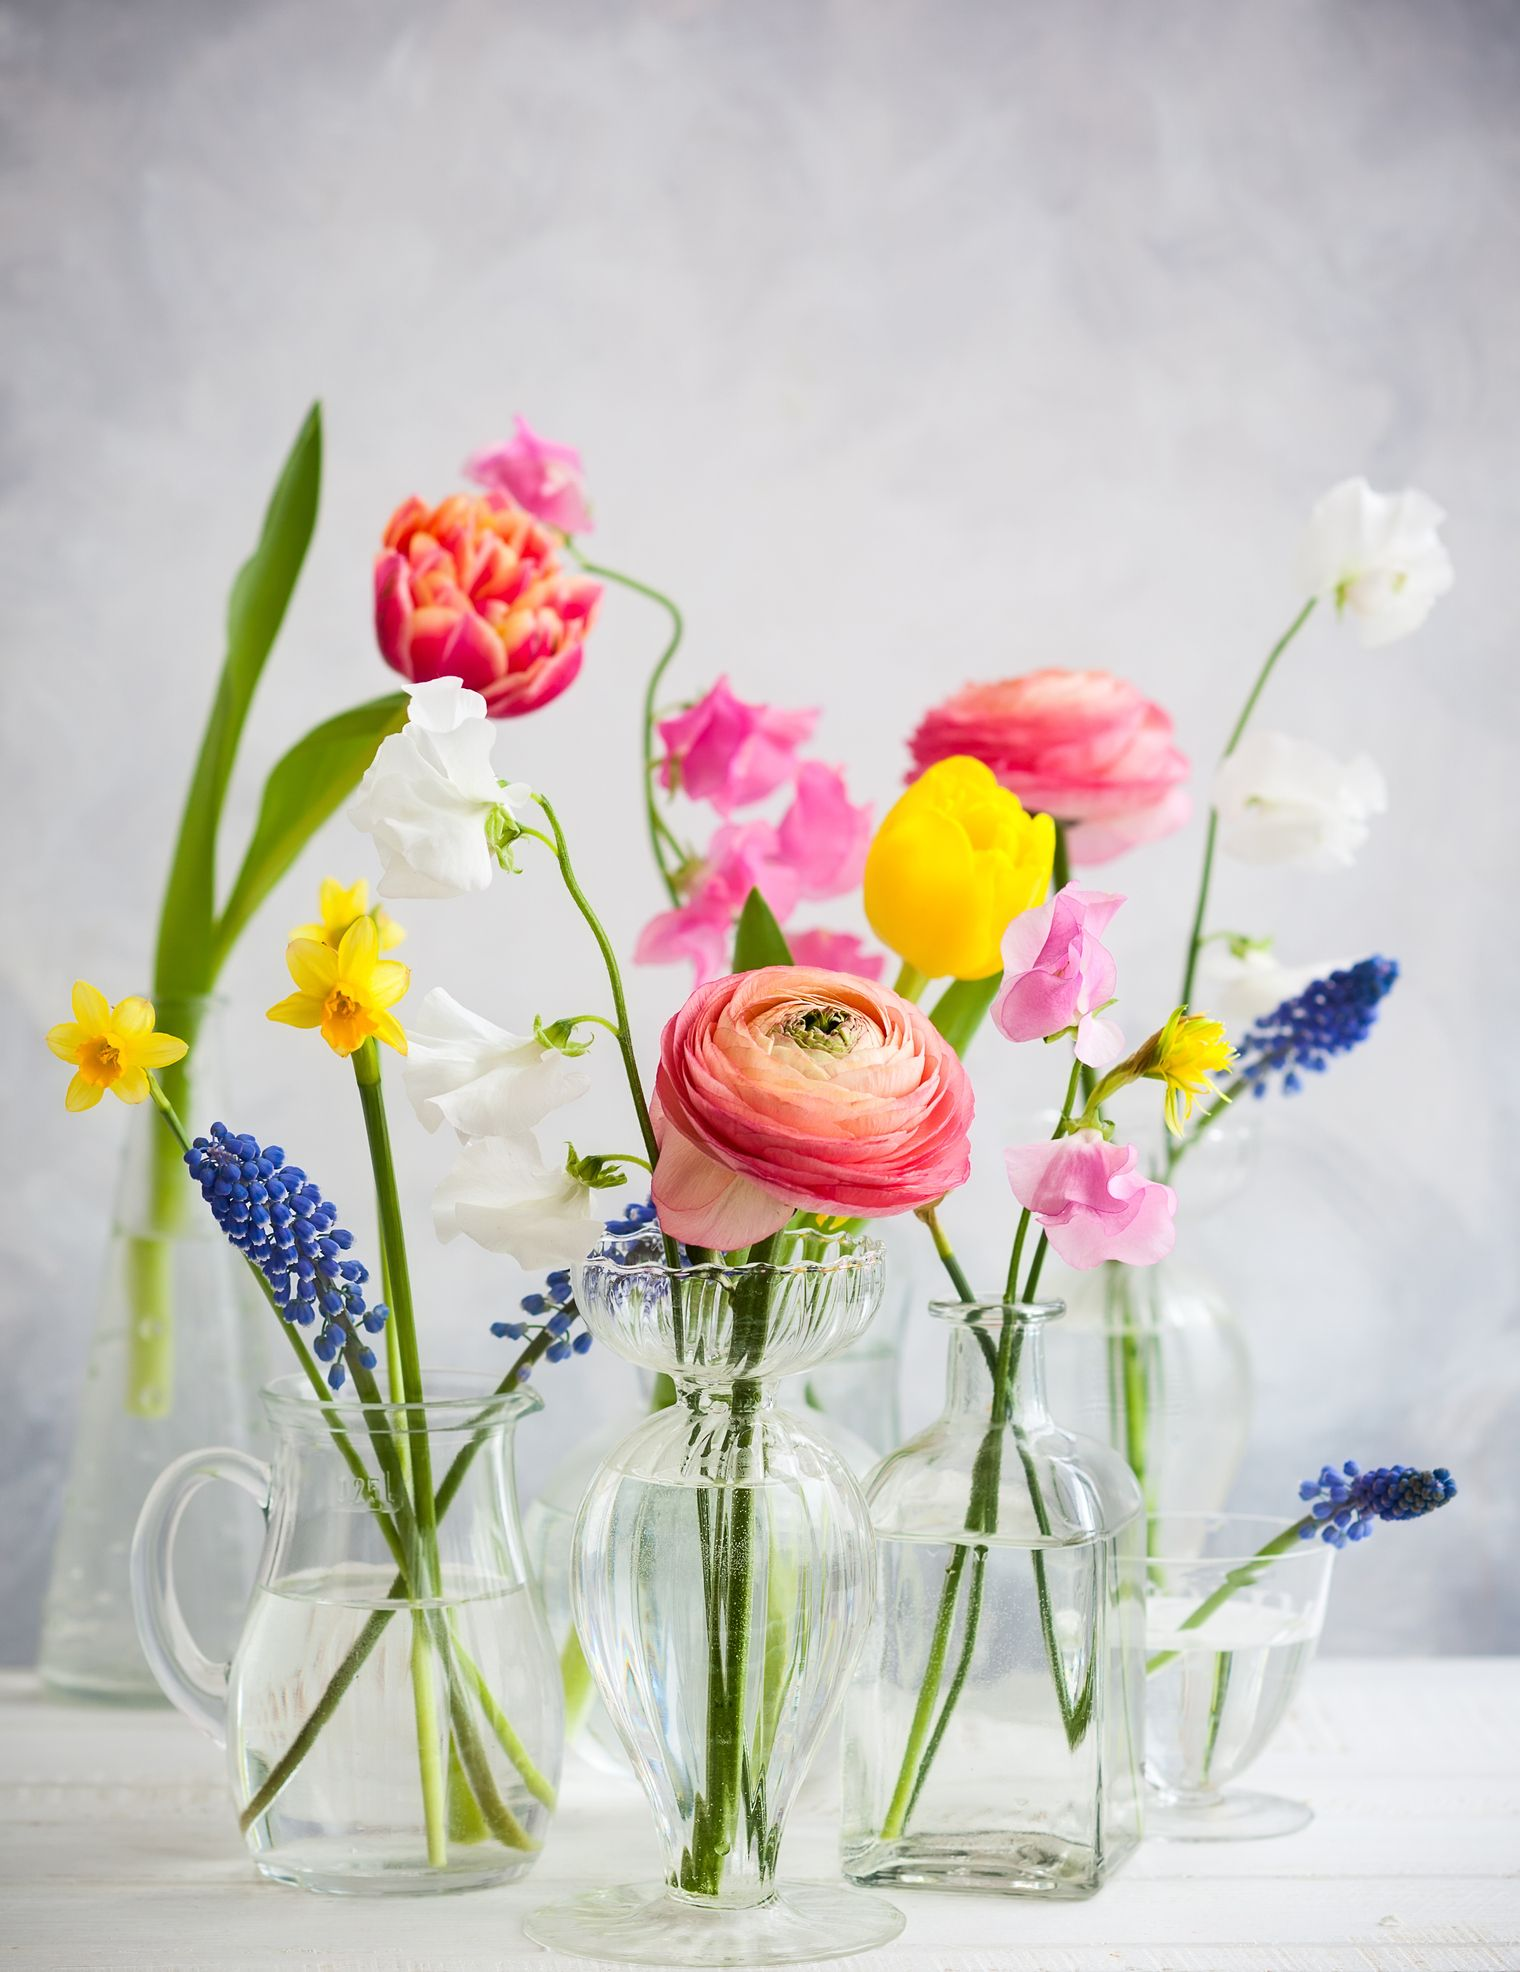 14 Popular Easter Flowers And What They Symbolize Easter Flowers Pretty Flowers Flower Arrangements